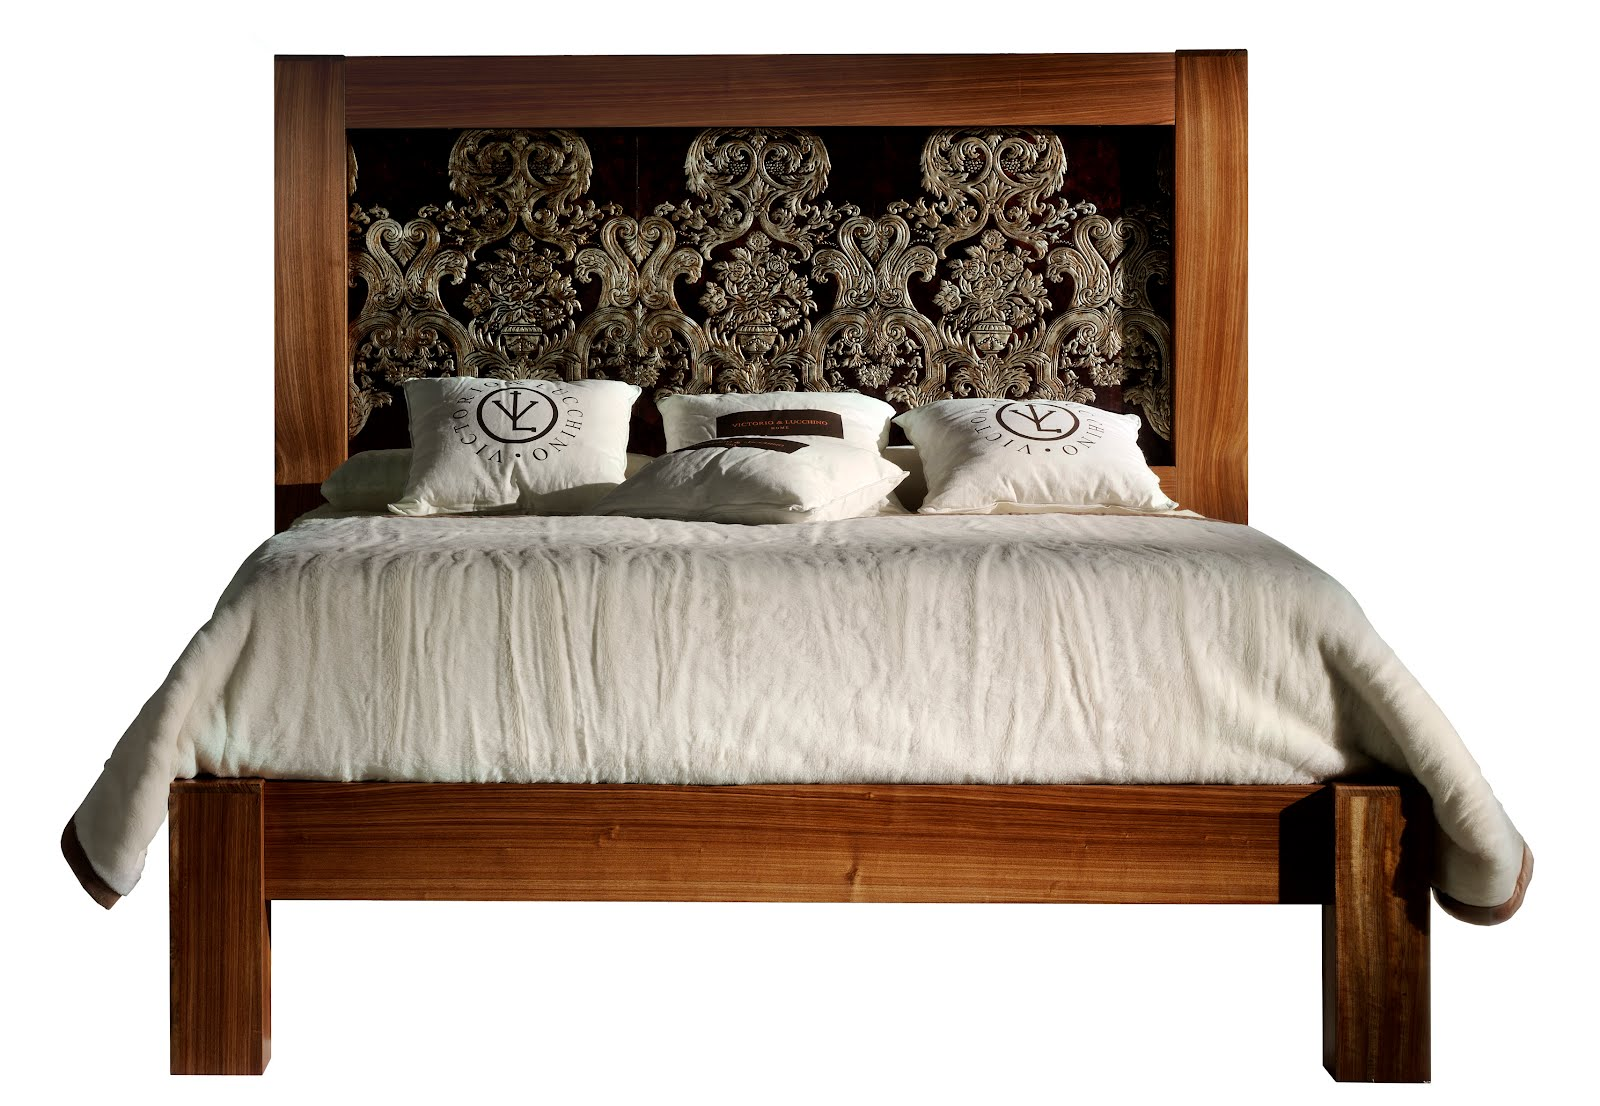 portobellodeluxe mehr als einfach nur ein bett. Black Bedroom Furniture Sets. Home Design Ideas